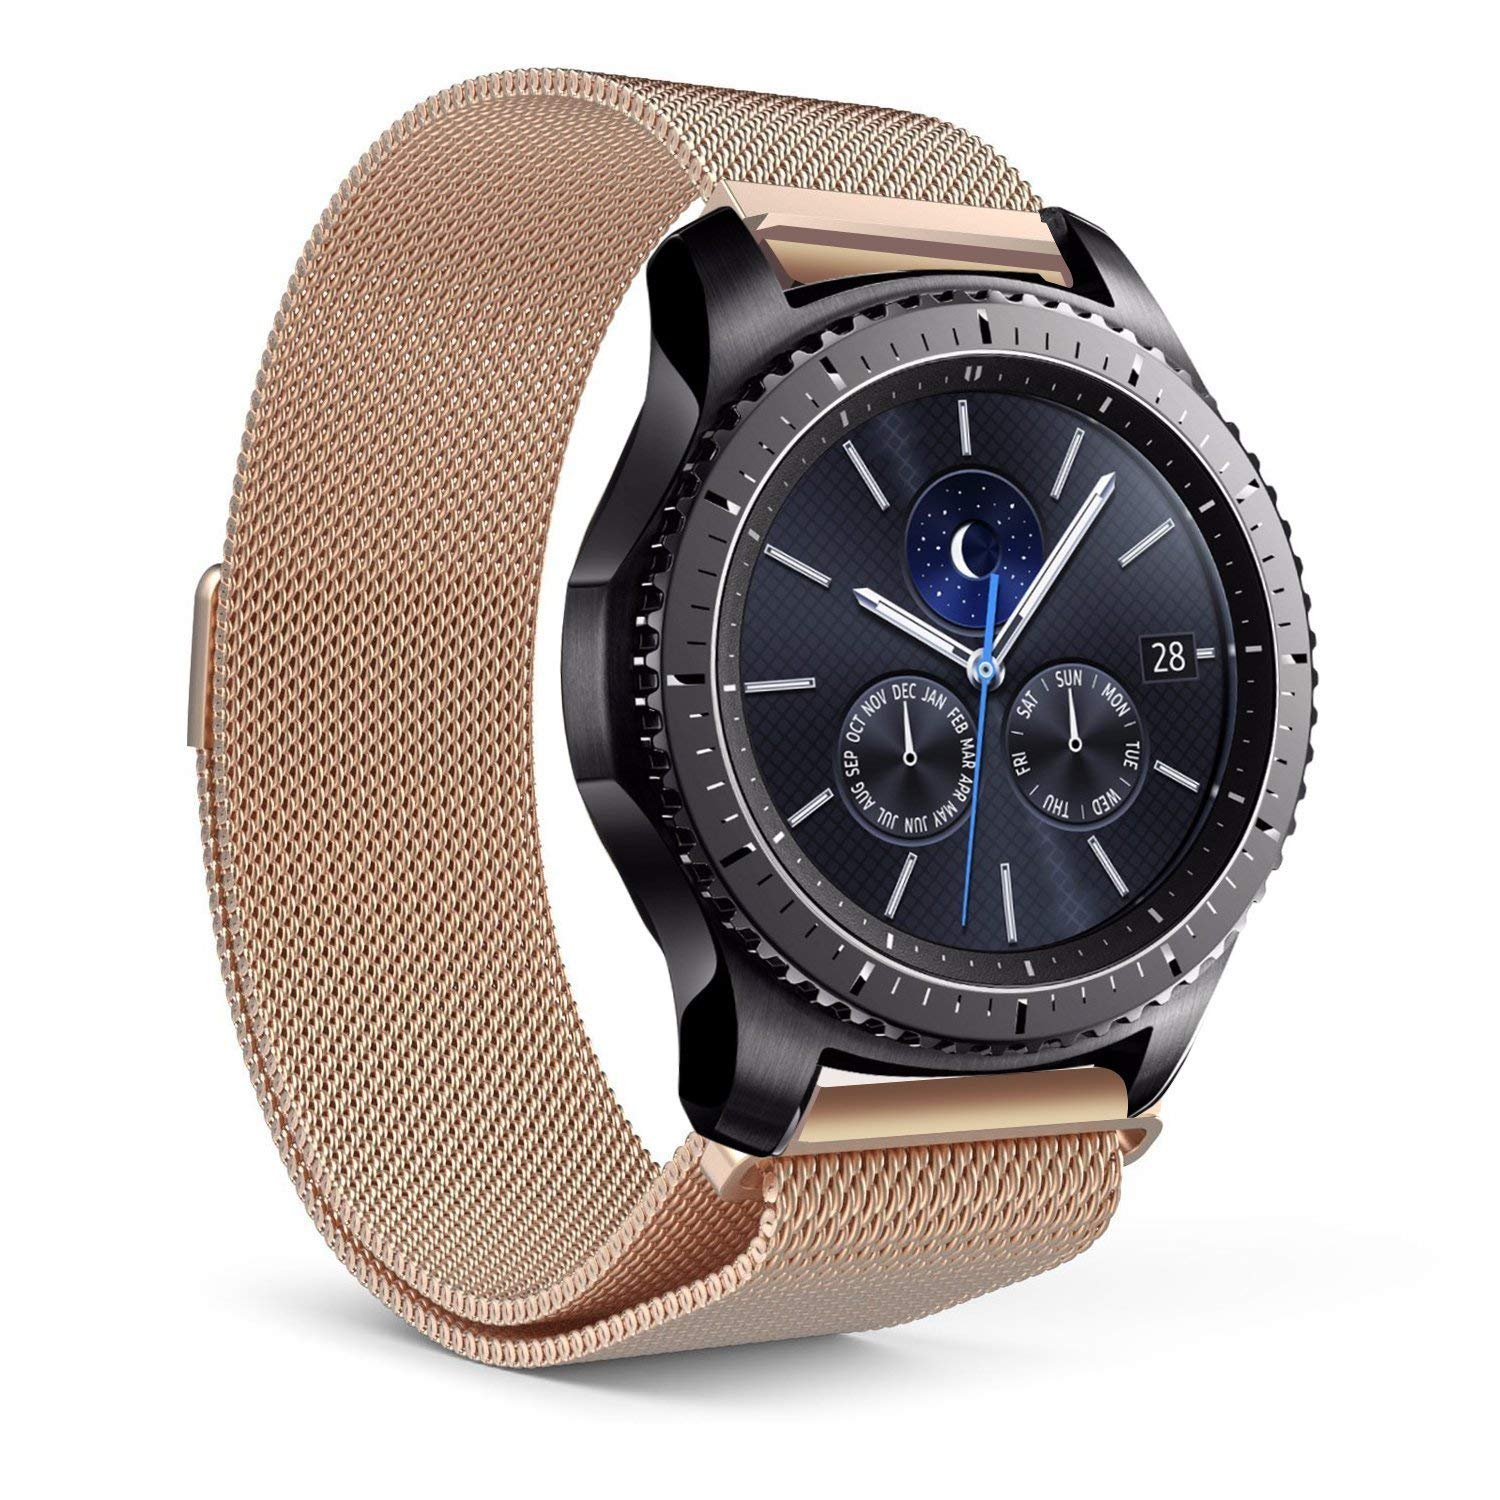 SPGuard for Gear S3 Band/Galaxy Gear S3 Bands,22MM Gear S3 Bands Milanese loop Stainless Steel Strap Wrist Replacement Band for Samsung Gear S3 Frontier/Gear S4 Classic Smart Watch (Rose gold)